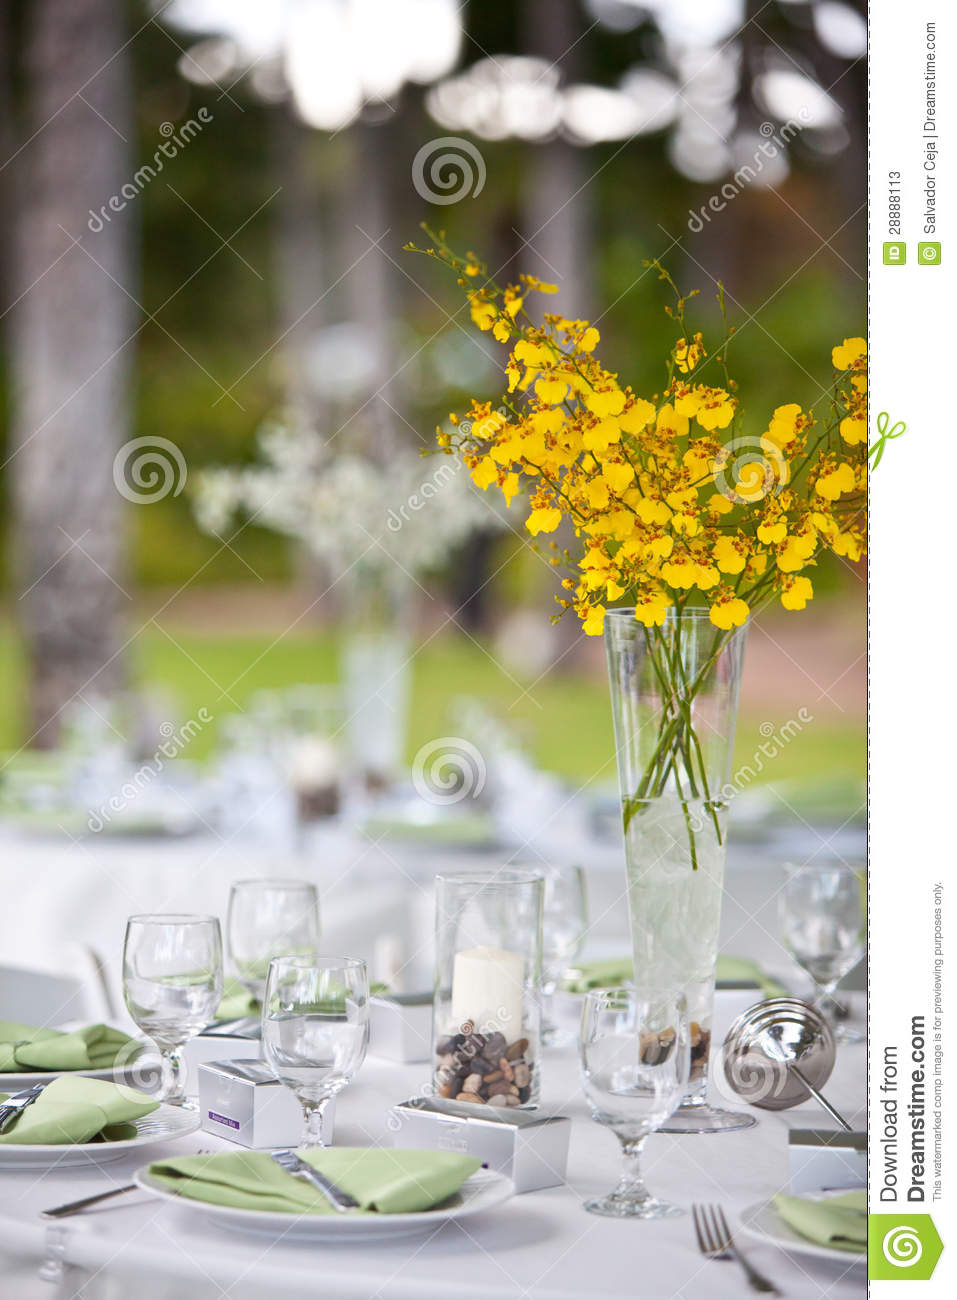 beach wedding decor table setting flowers 28888113